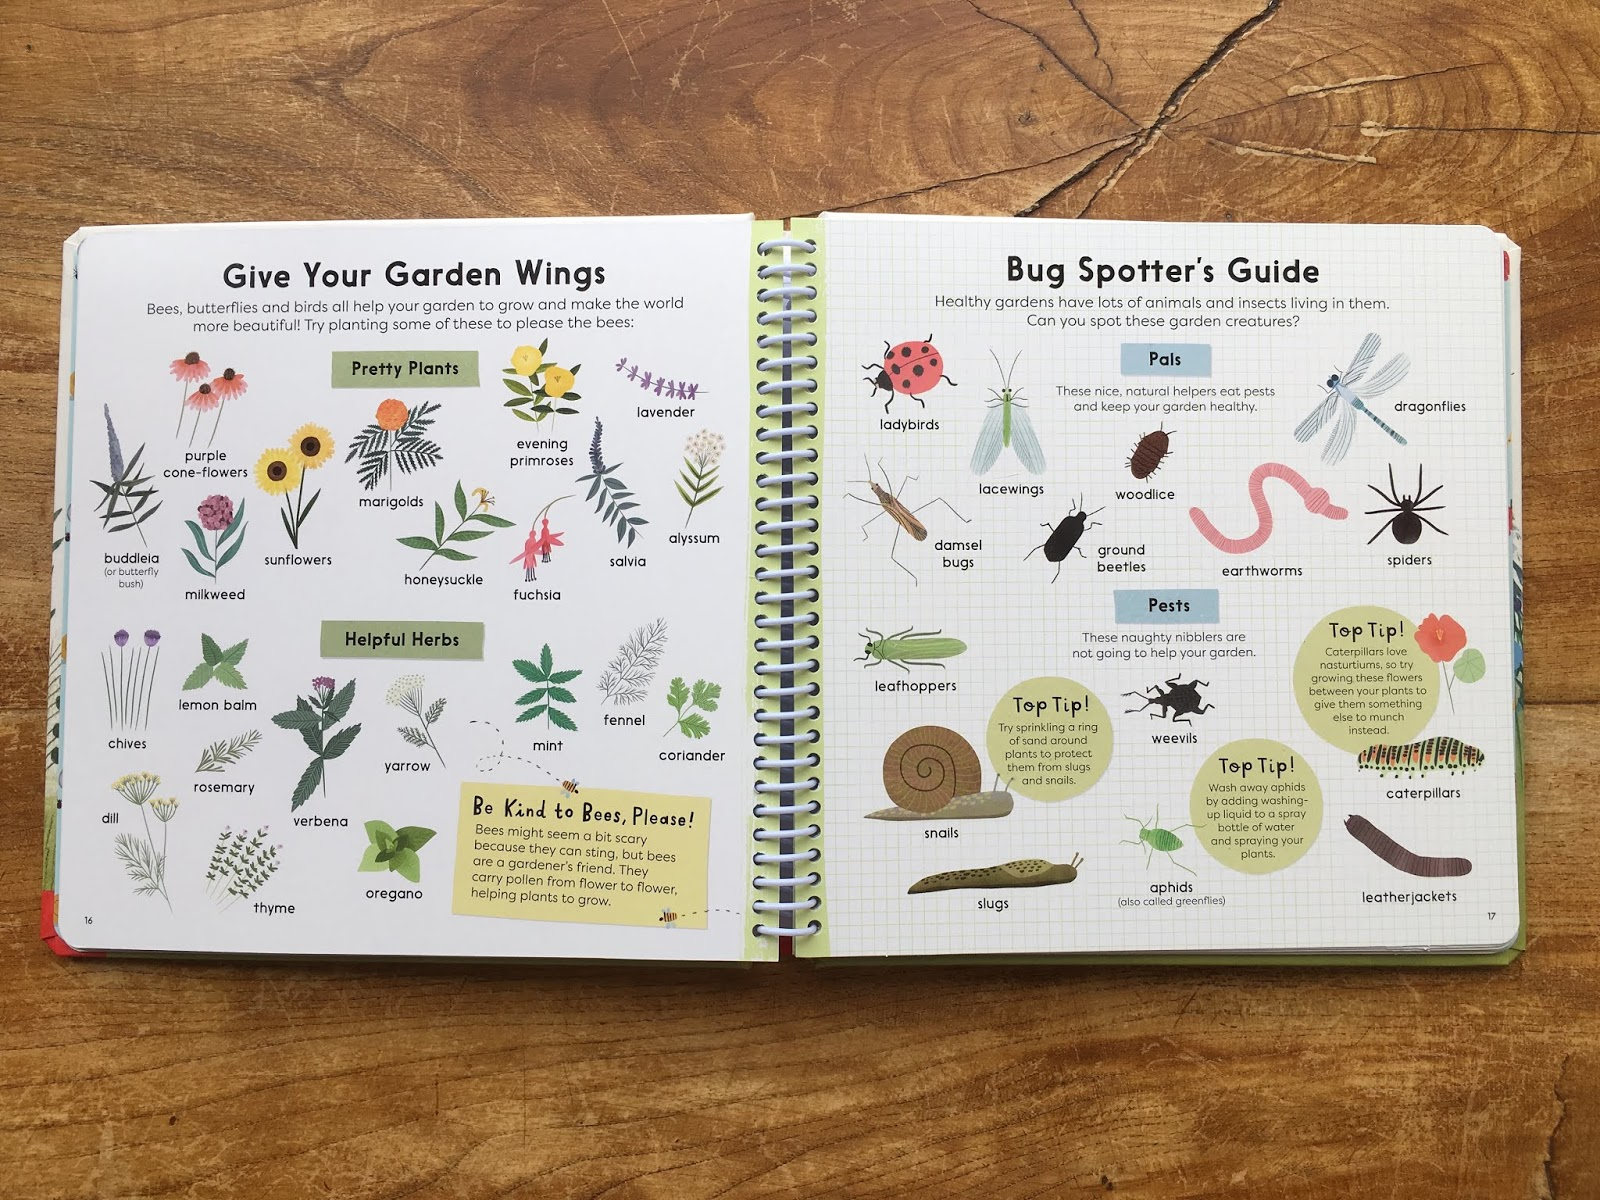 Touring Picture Book Sunflower Shoots And Muddy Boots Flower